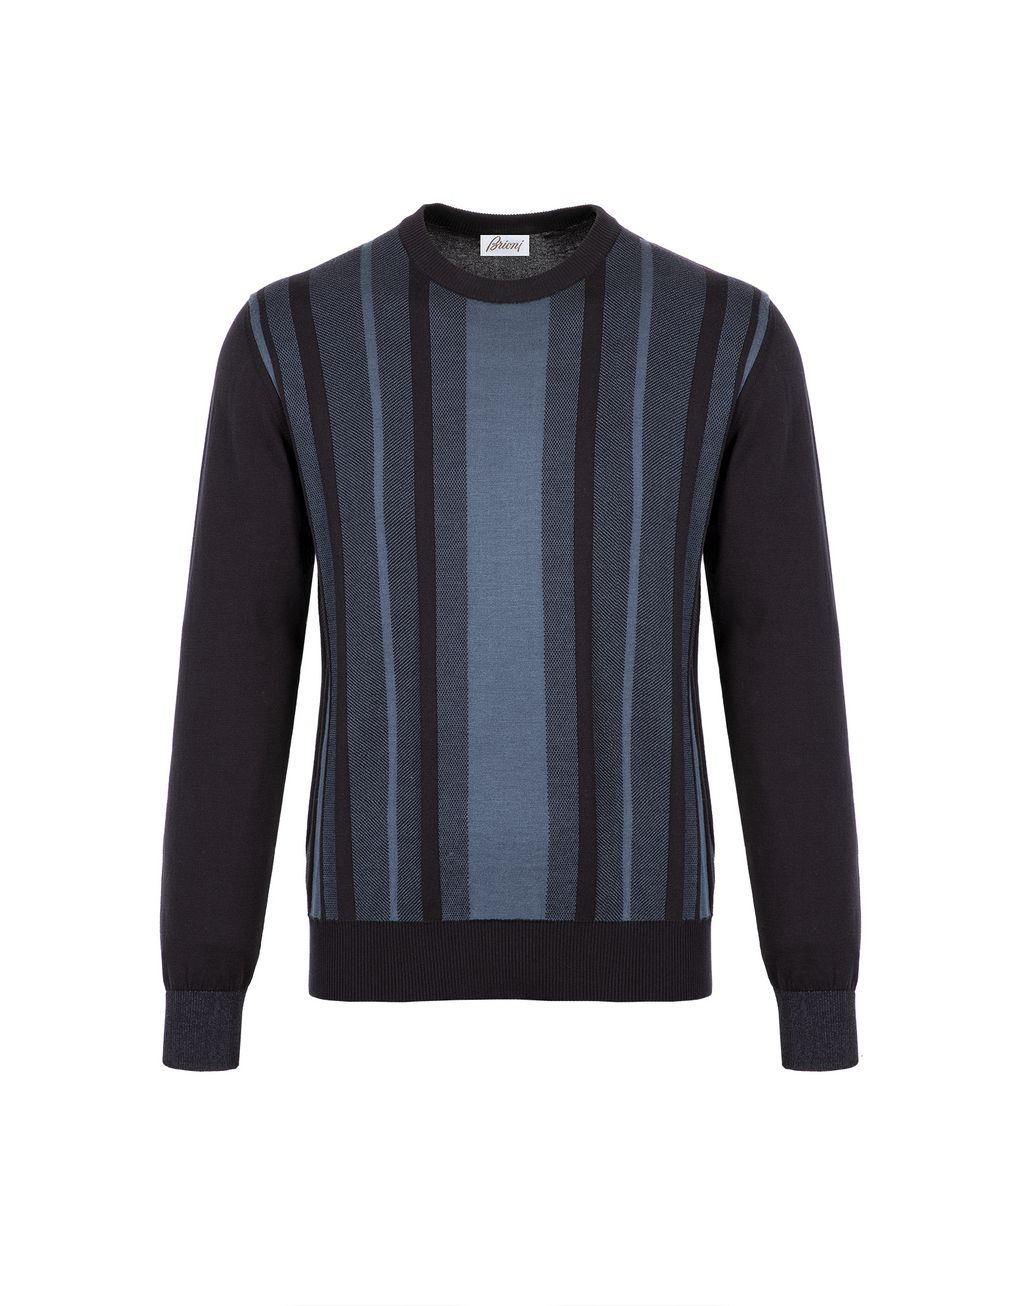 BRIONI Navy Blue Cotton and Silk Striped Sweater with Bicolour Trims Knitwear [*** pickupInStoreShippingNotGuaranteed_info ***] f